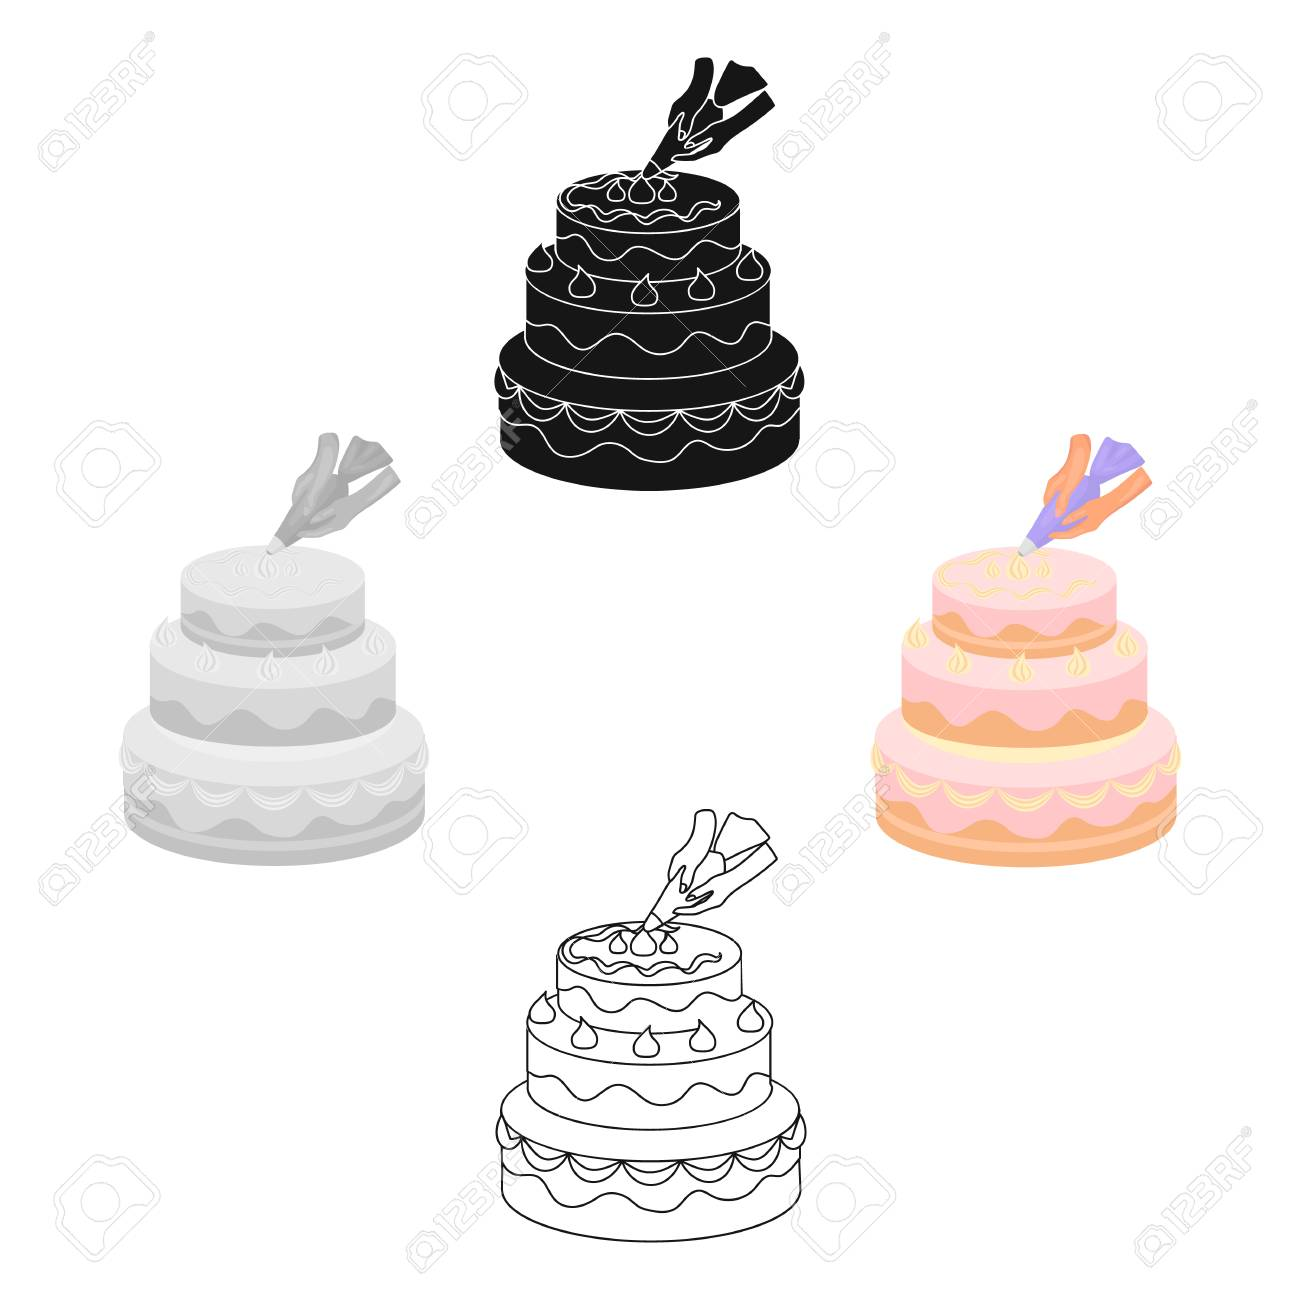 Decorating Of Birthday Cake Icon In Cartoon Black Style Isolated Royalty Free Cliparts Vectors And Stock Illustration Image 125098625